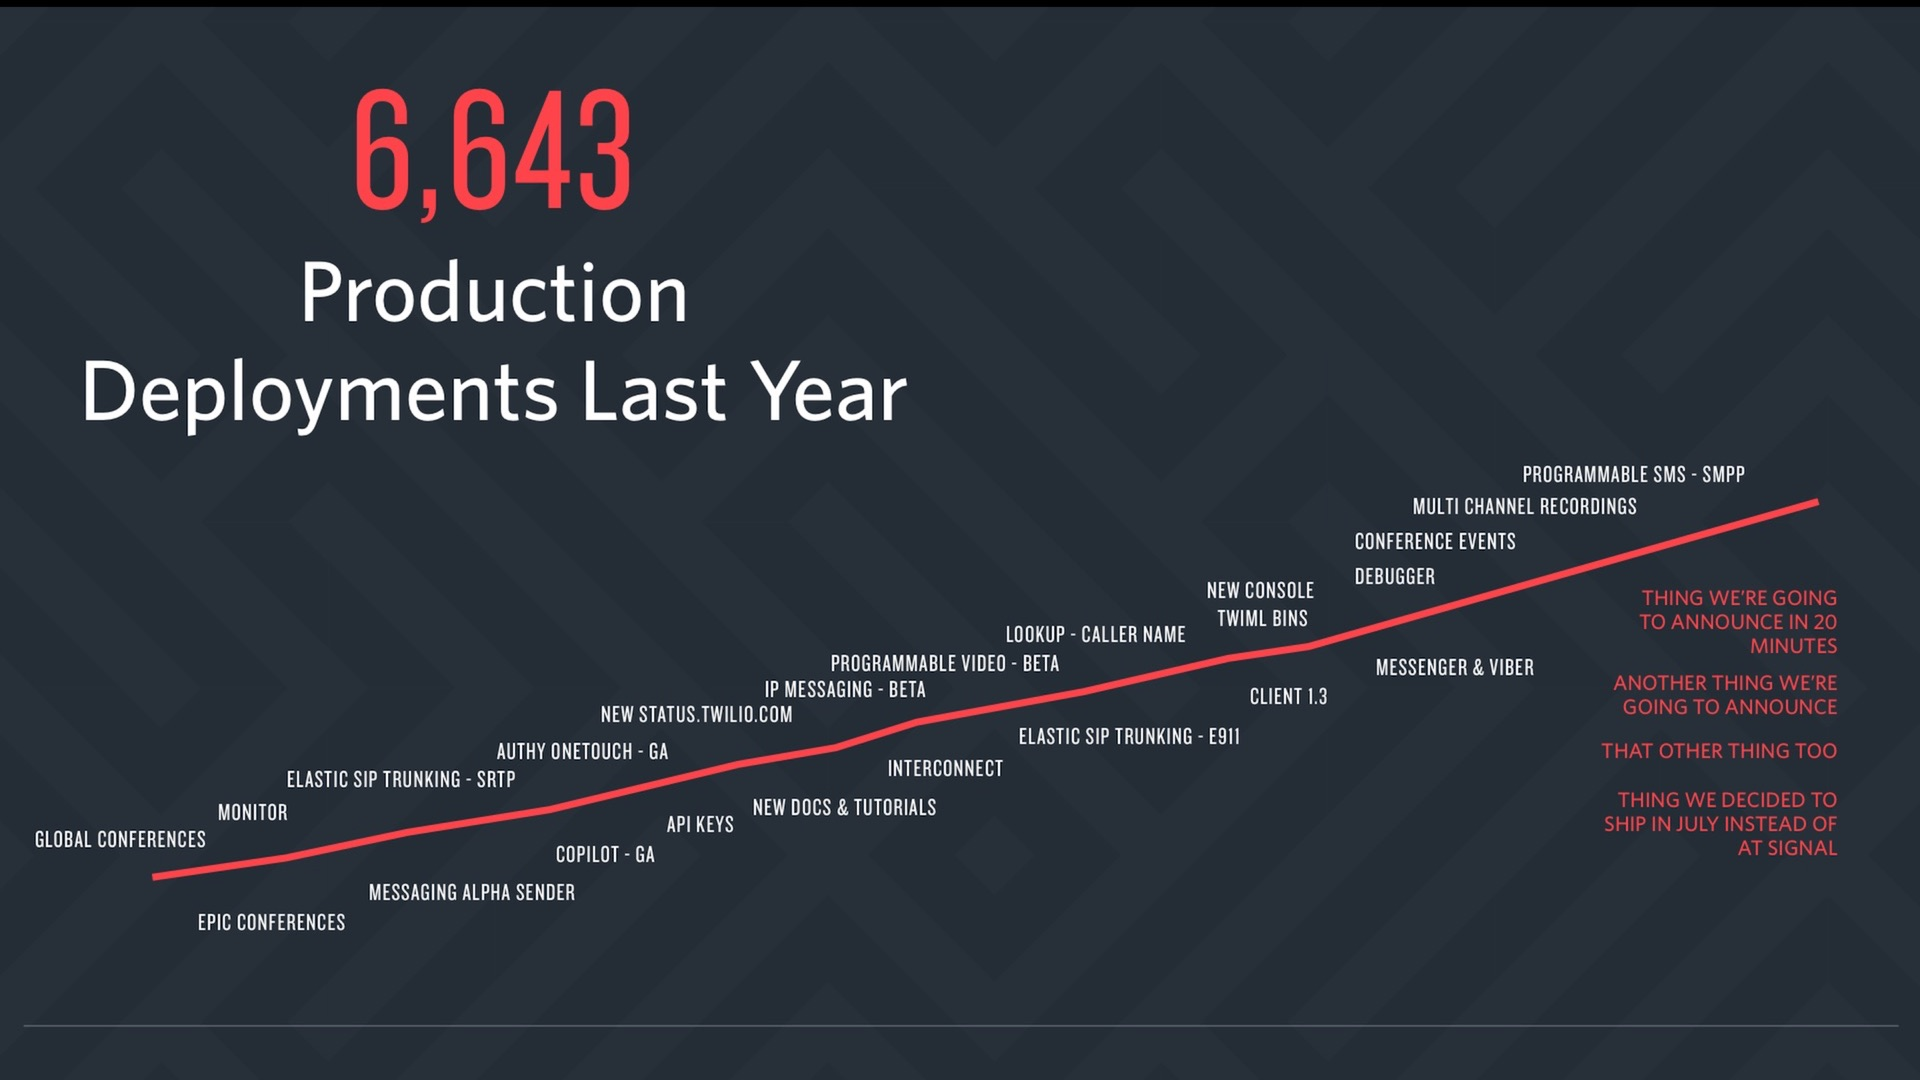 6,643 deploys per year for Twilio in 2015.